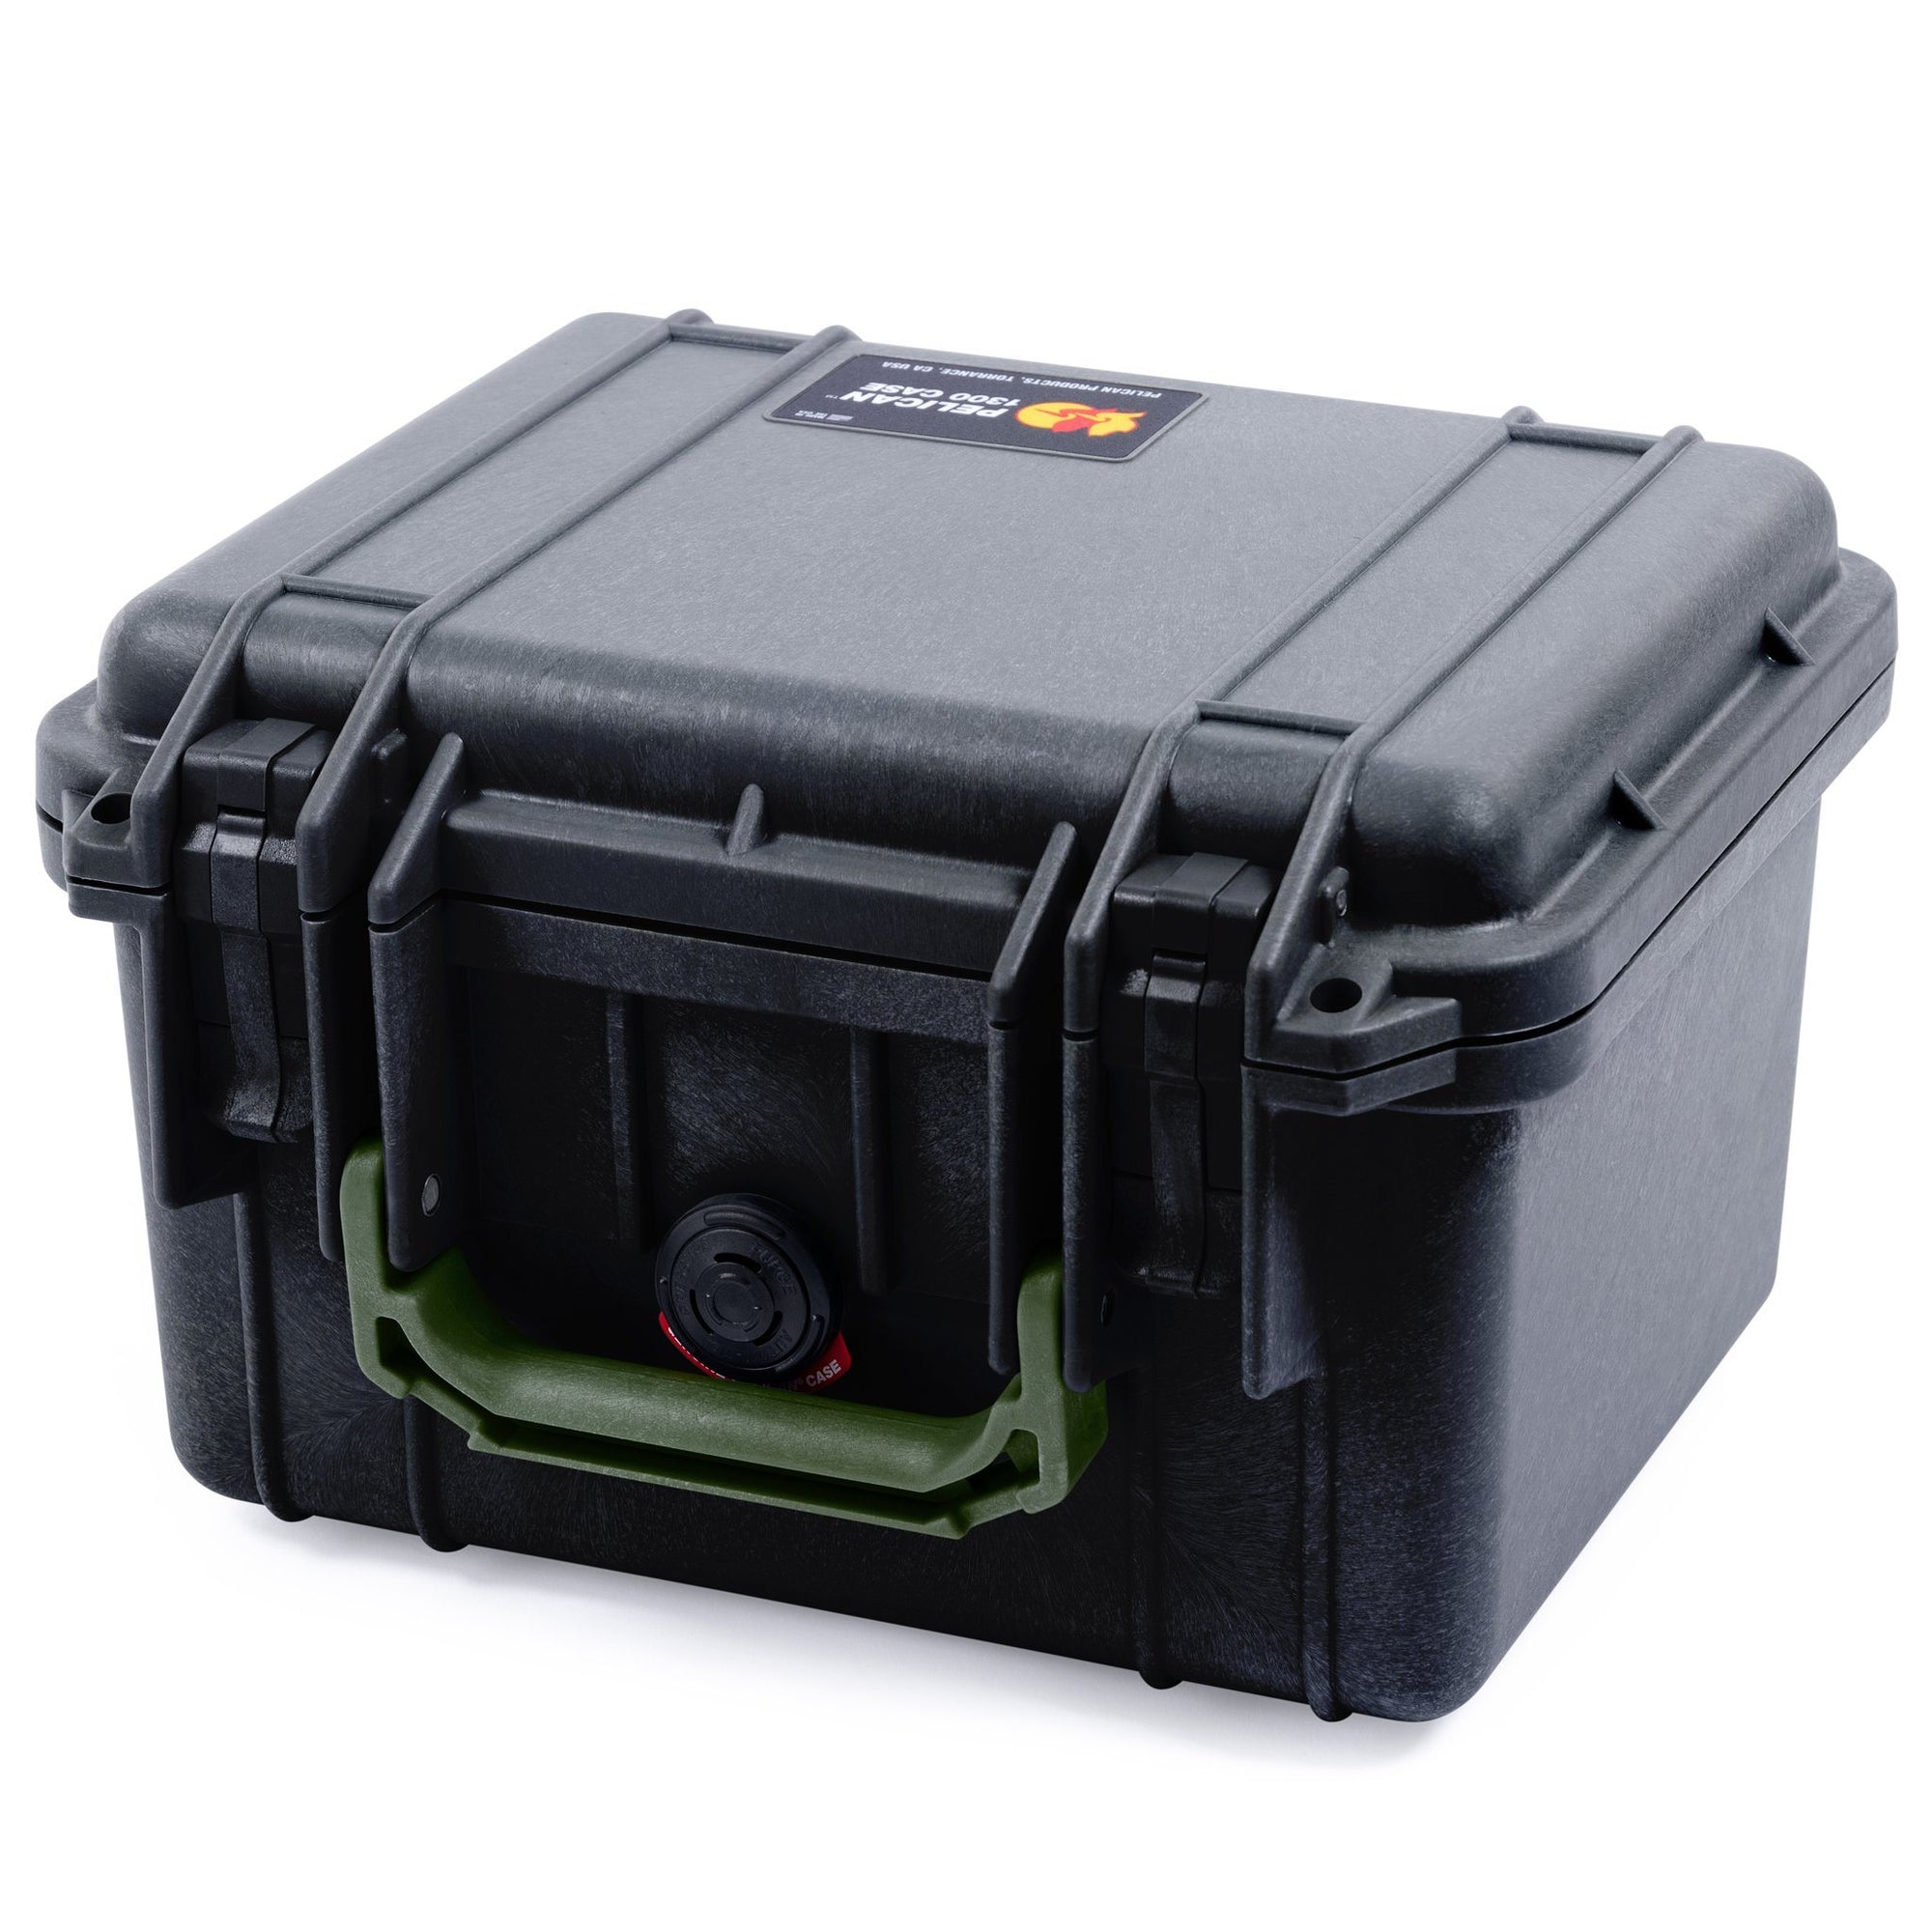 Pelican 1300 Case, Black with OD Green Handle - Pelican Color Case